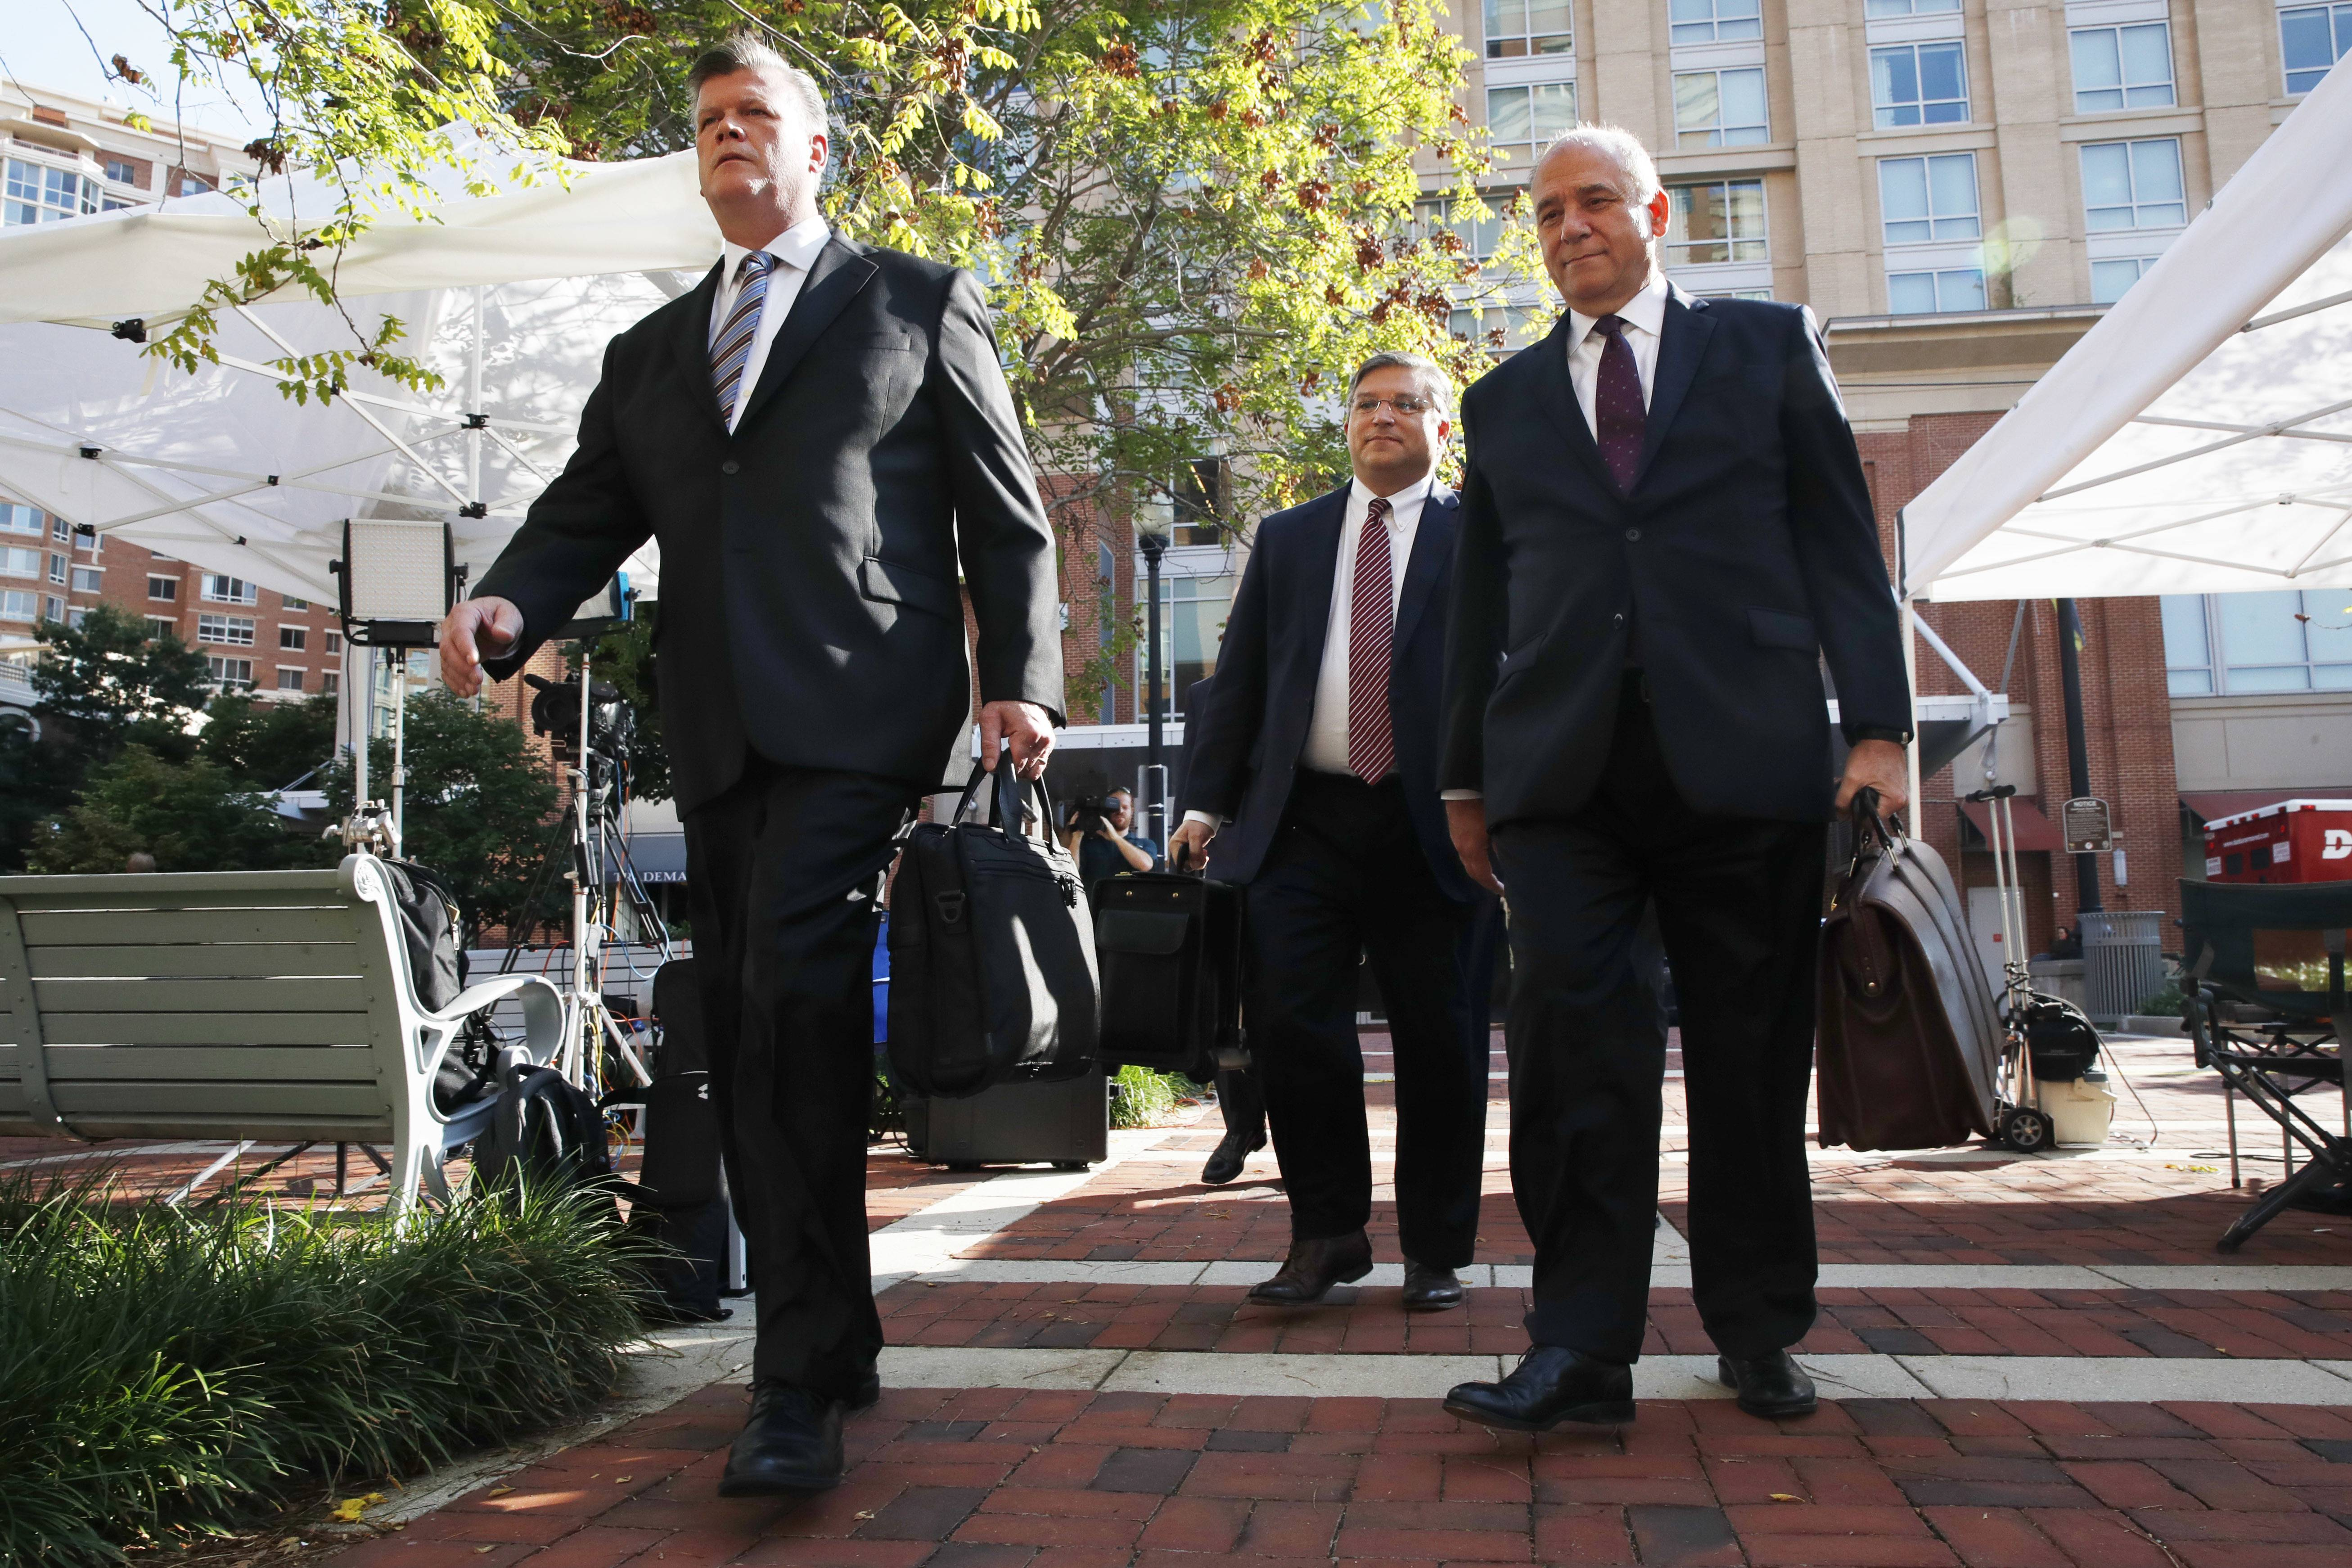 Members of the defense team for Paul Manafort, from left, Kevin Downing, Richard Westling, and Thomas Zehnle, walk to federal court for closing arguments in the trial of the former Trump campaign chairman, in Alexandria, Va., Wednesday, Aug. 15, 2018. (AP Photo/Jacquelyn Martin)